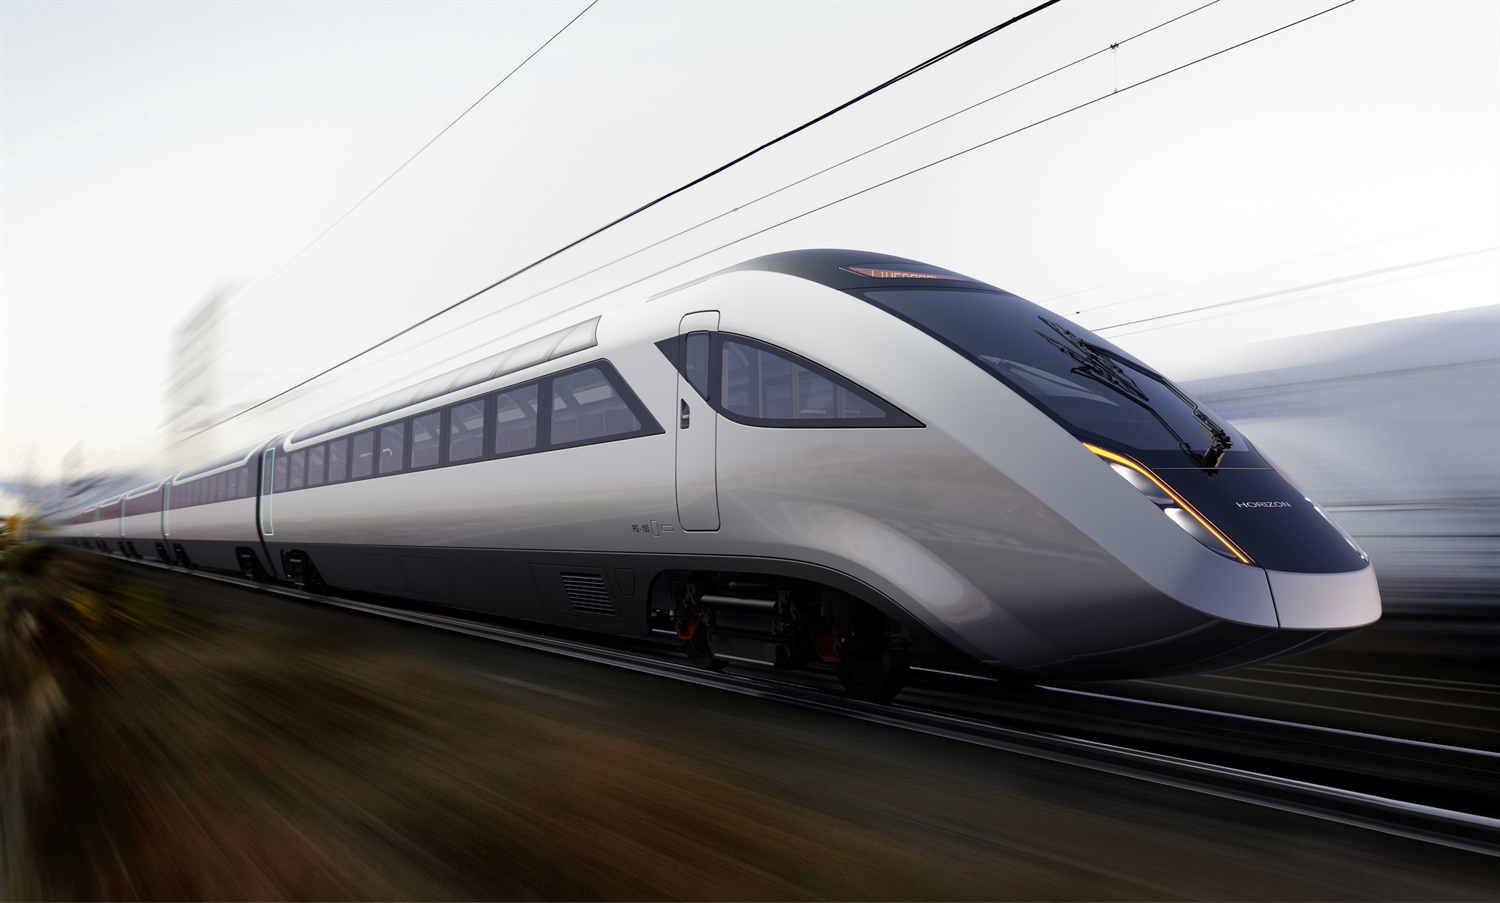 Finalists selected in Tomorrow's Train Design competition